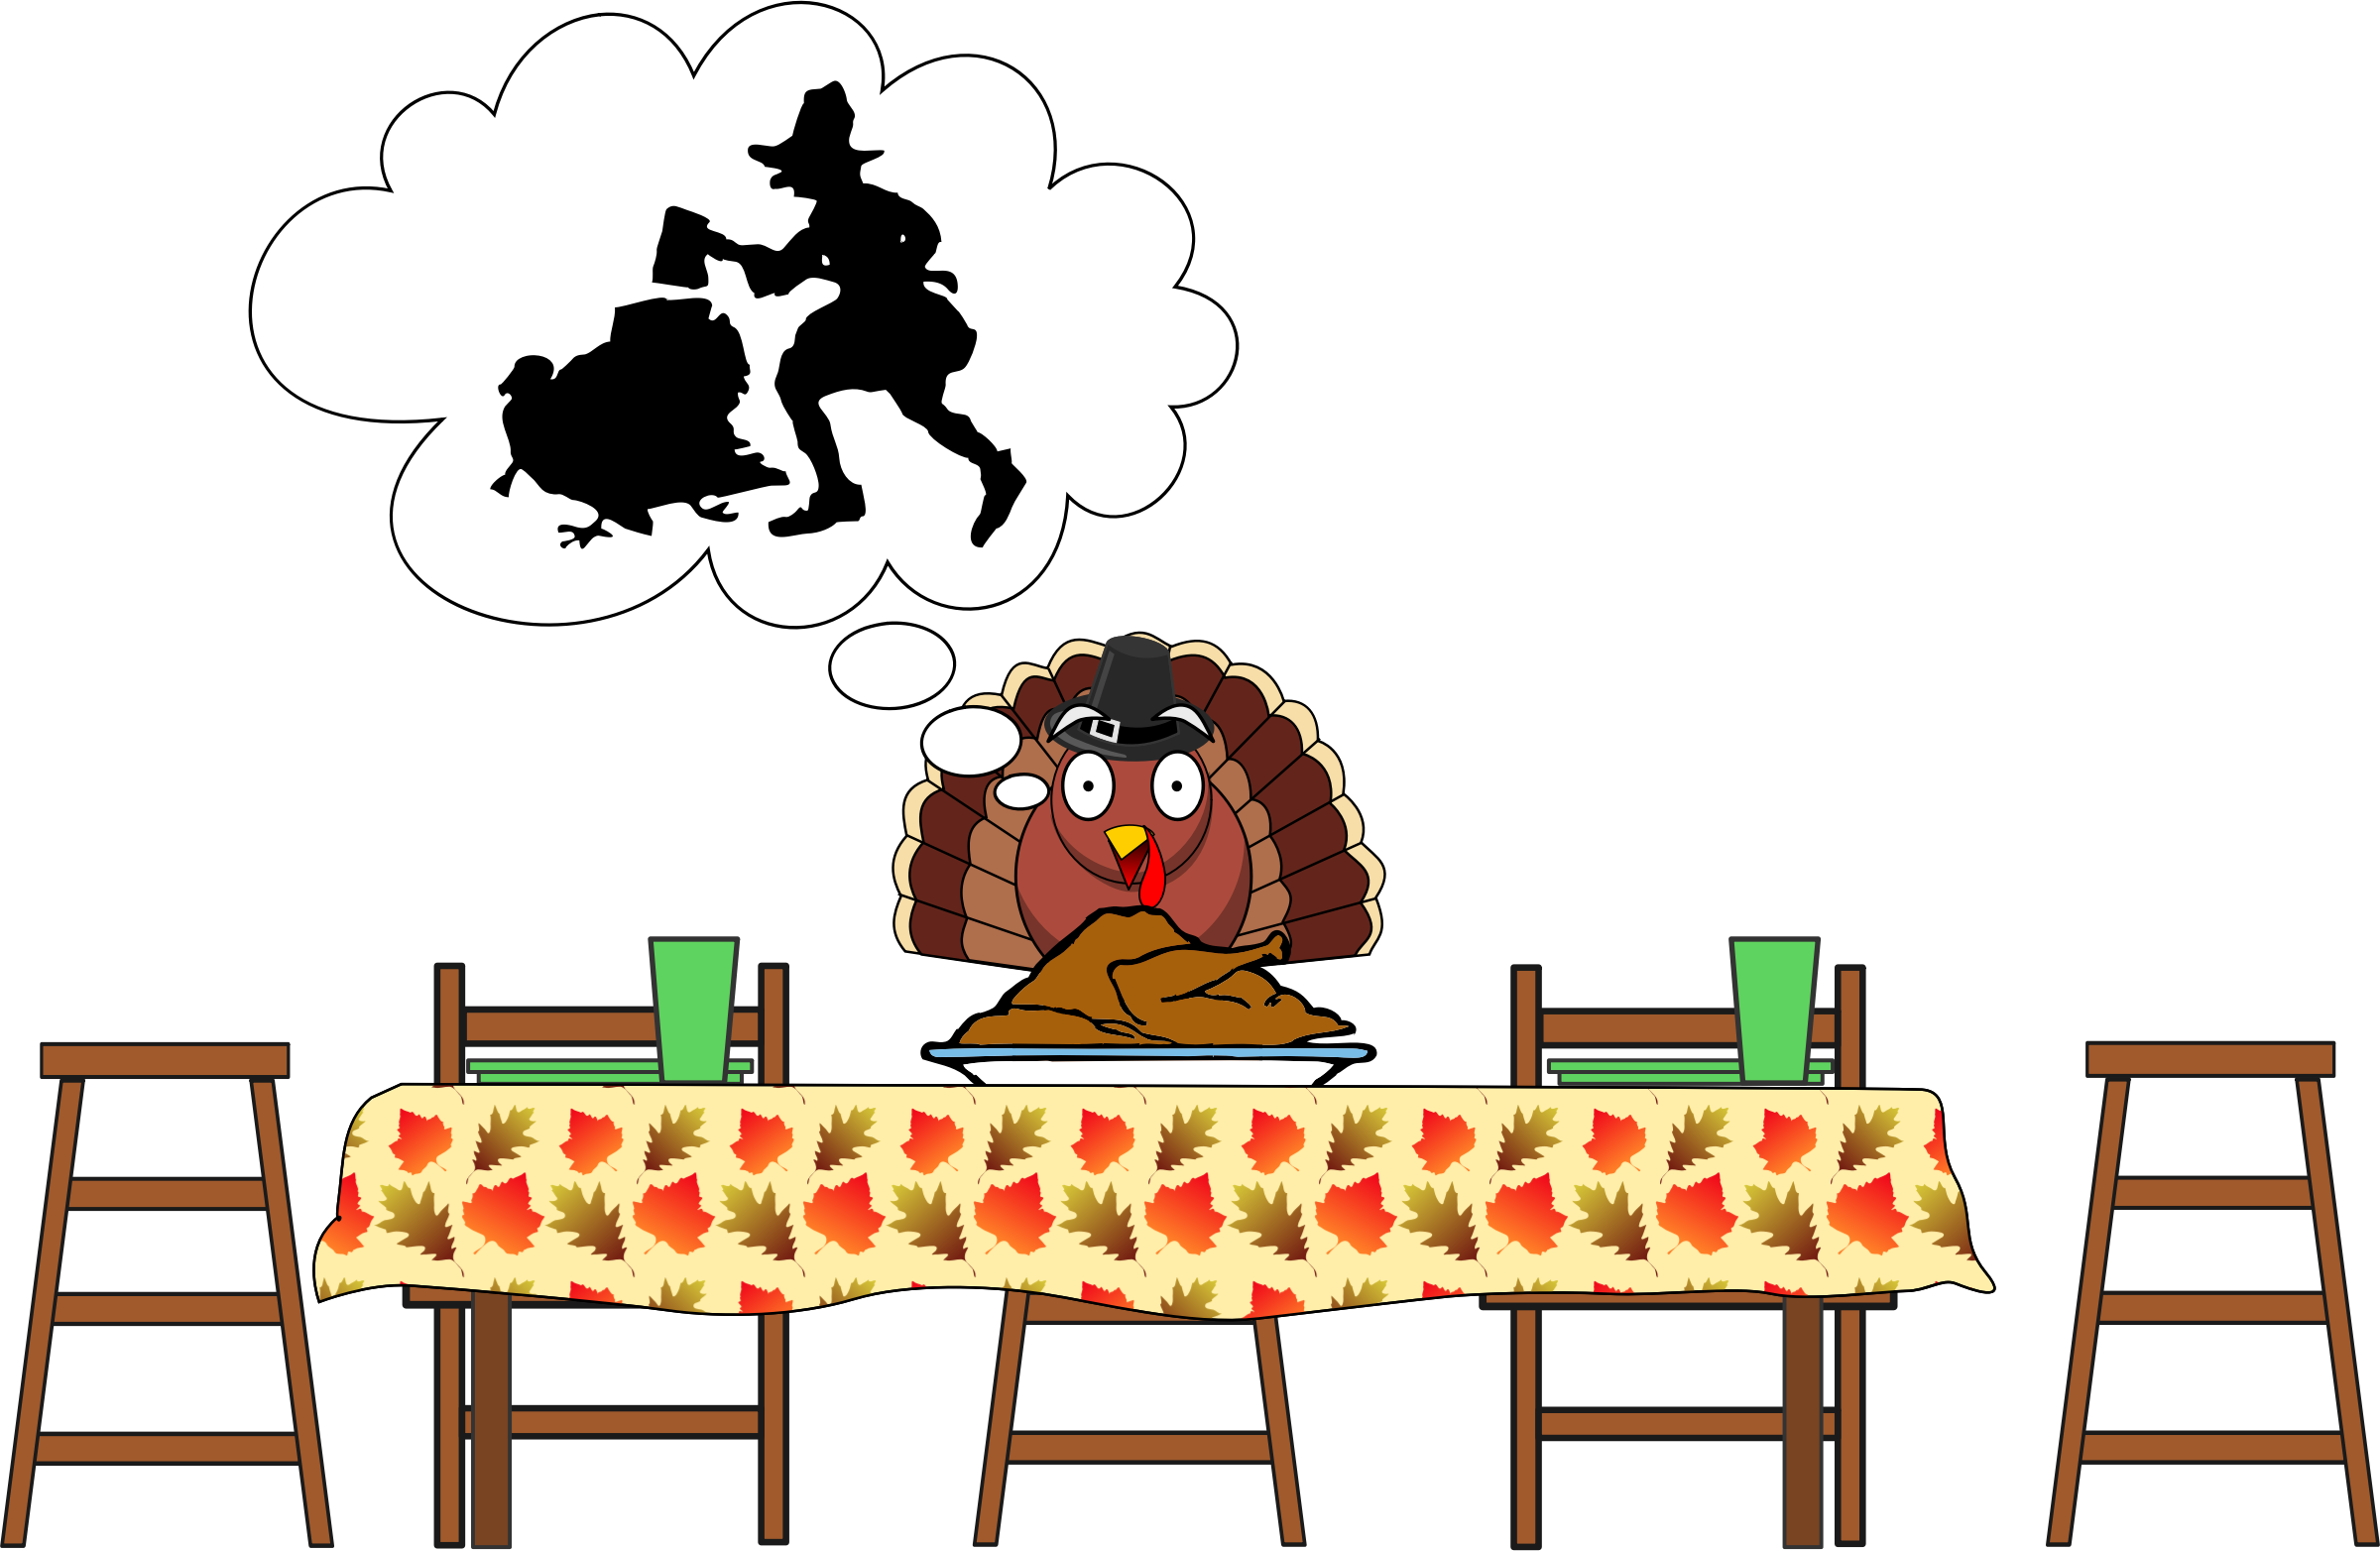 Turkey, Scared Turkey...Happy Thanksgiving by simpletutorials.net